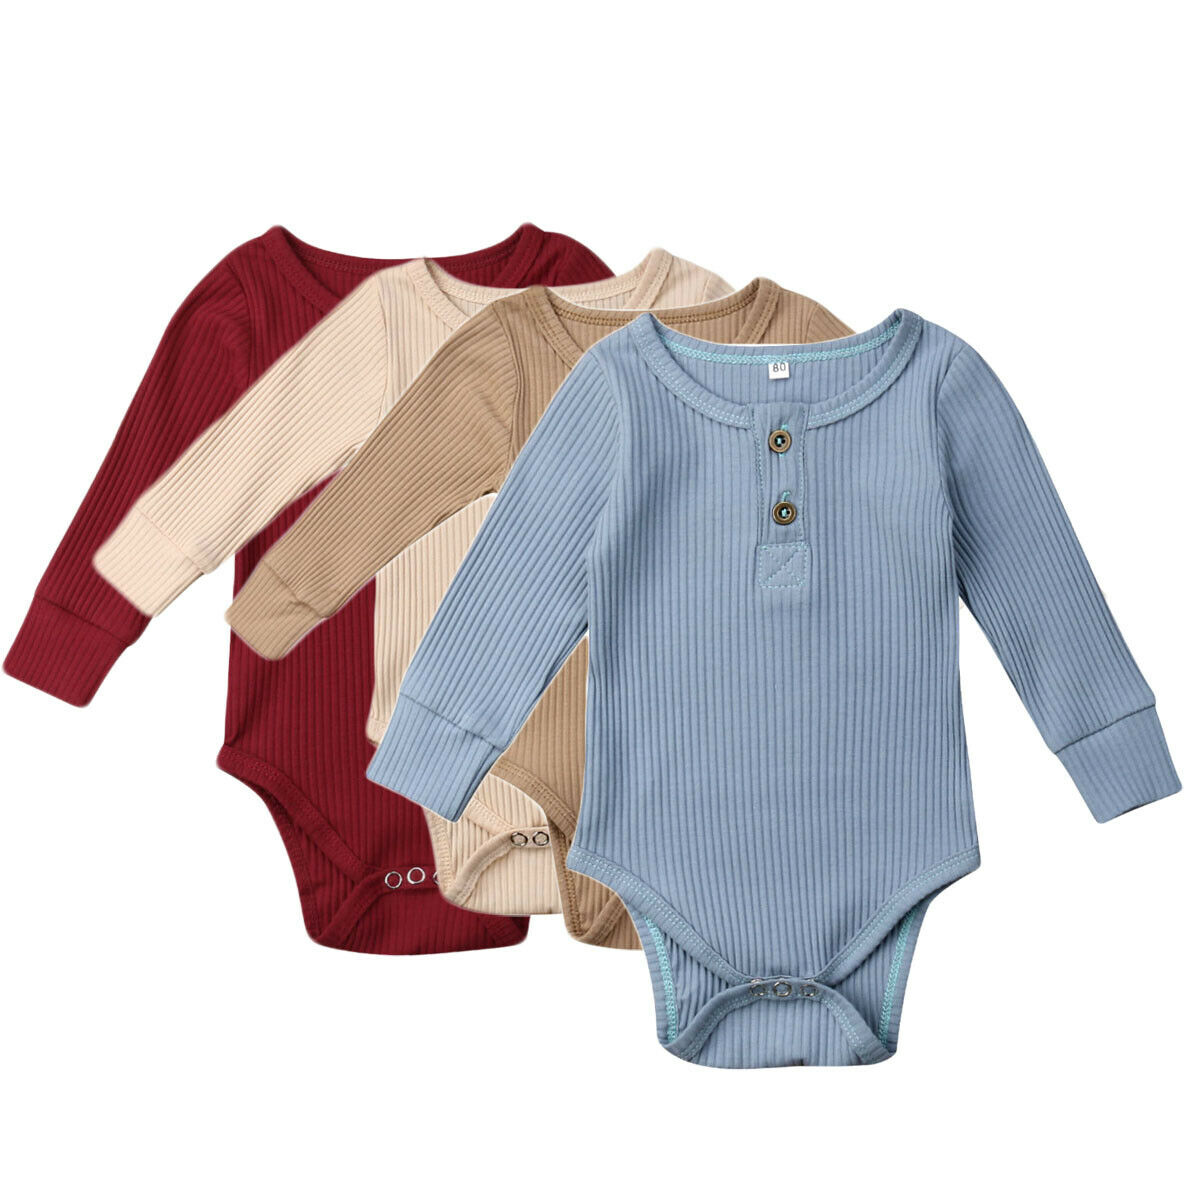 Newborn Infant Baby Boy Girl Kid Knit Long Sleeve   Romper   Jumpsuit Clothes Outfit 0-24M